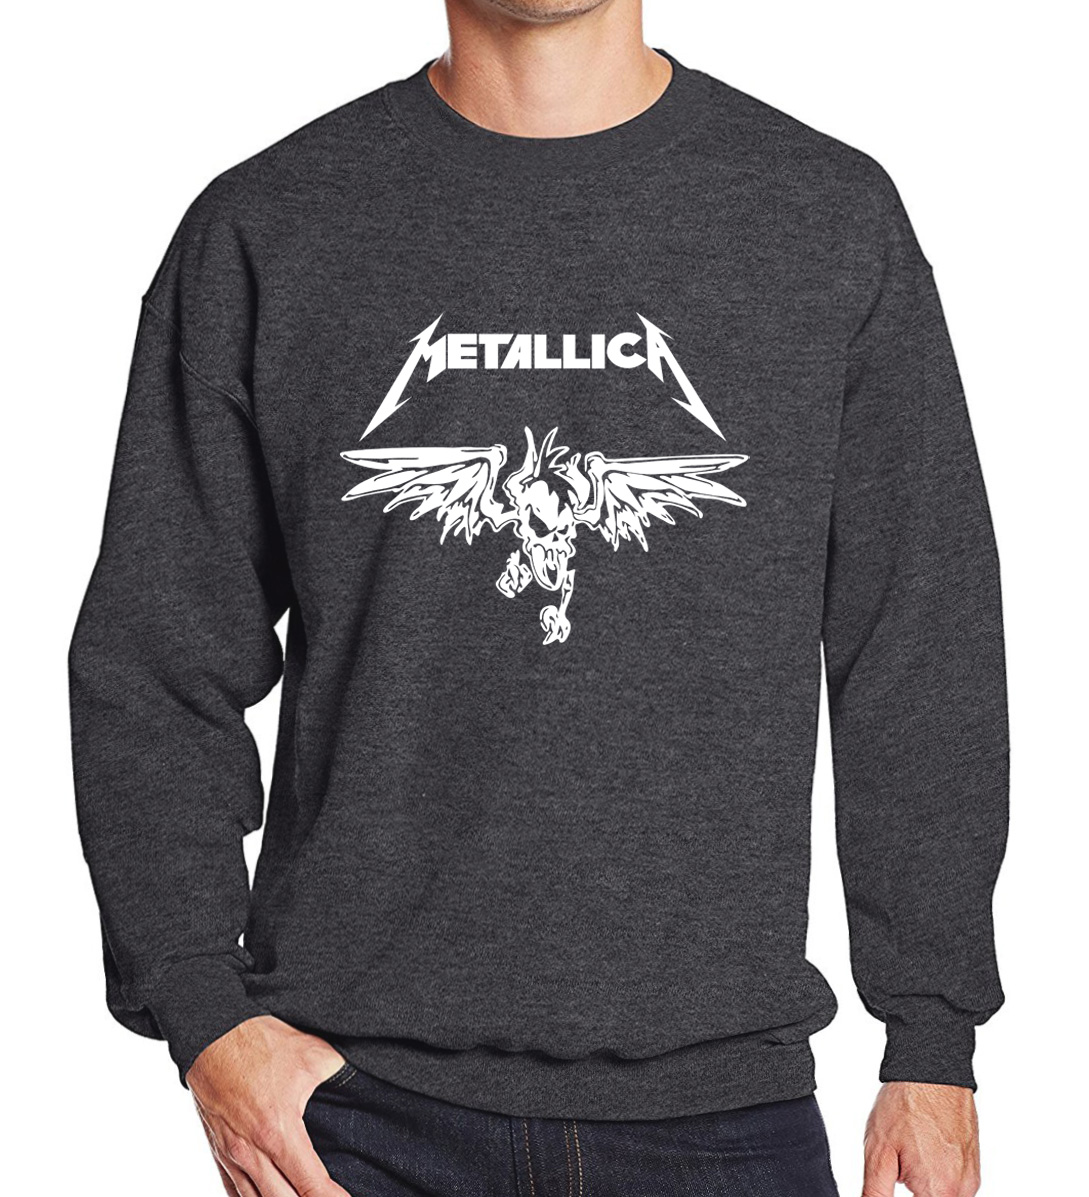 Sweatshirt 2018 spring winter Heavy Metal Rock Band pattern hoodies men fashion cool men ...